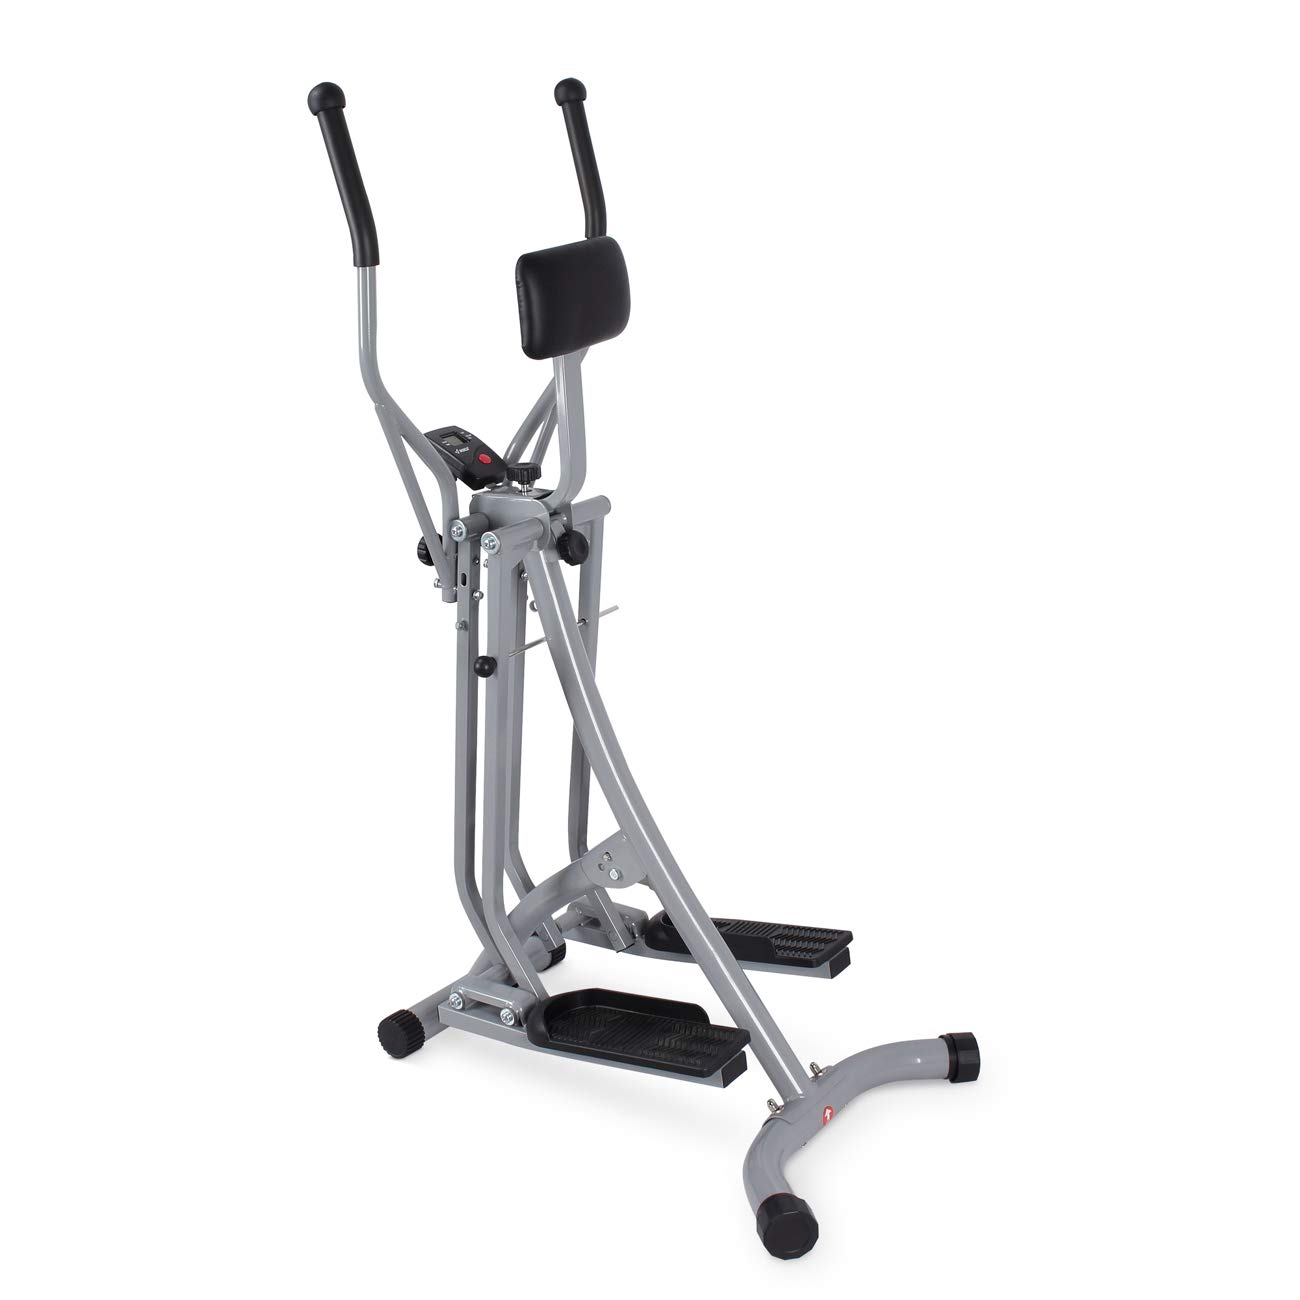 Akonza Air Walker Glider Stride Elliptical Trainer Fitness Exercise Step Machine Workout Equipment w/Computer Monitor by Akonza (Image #1)